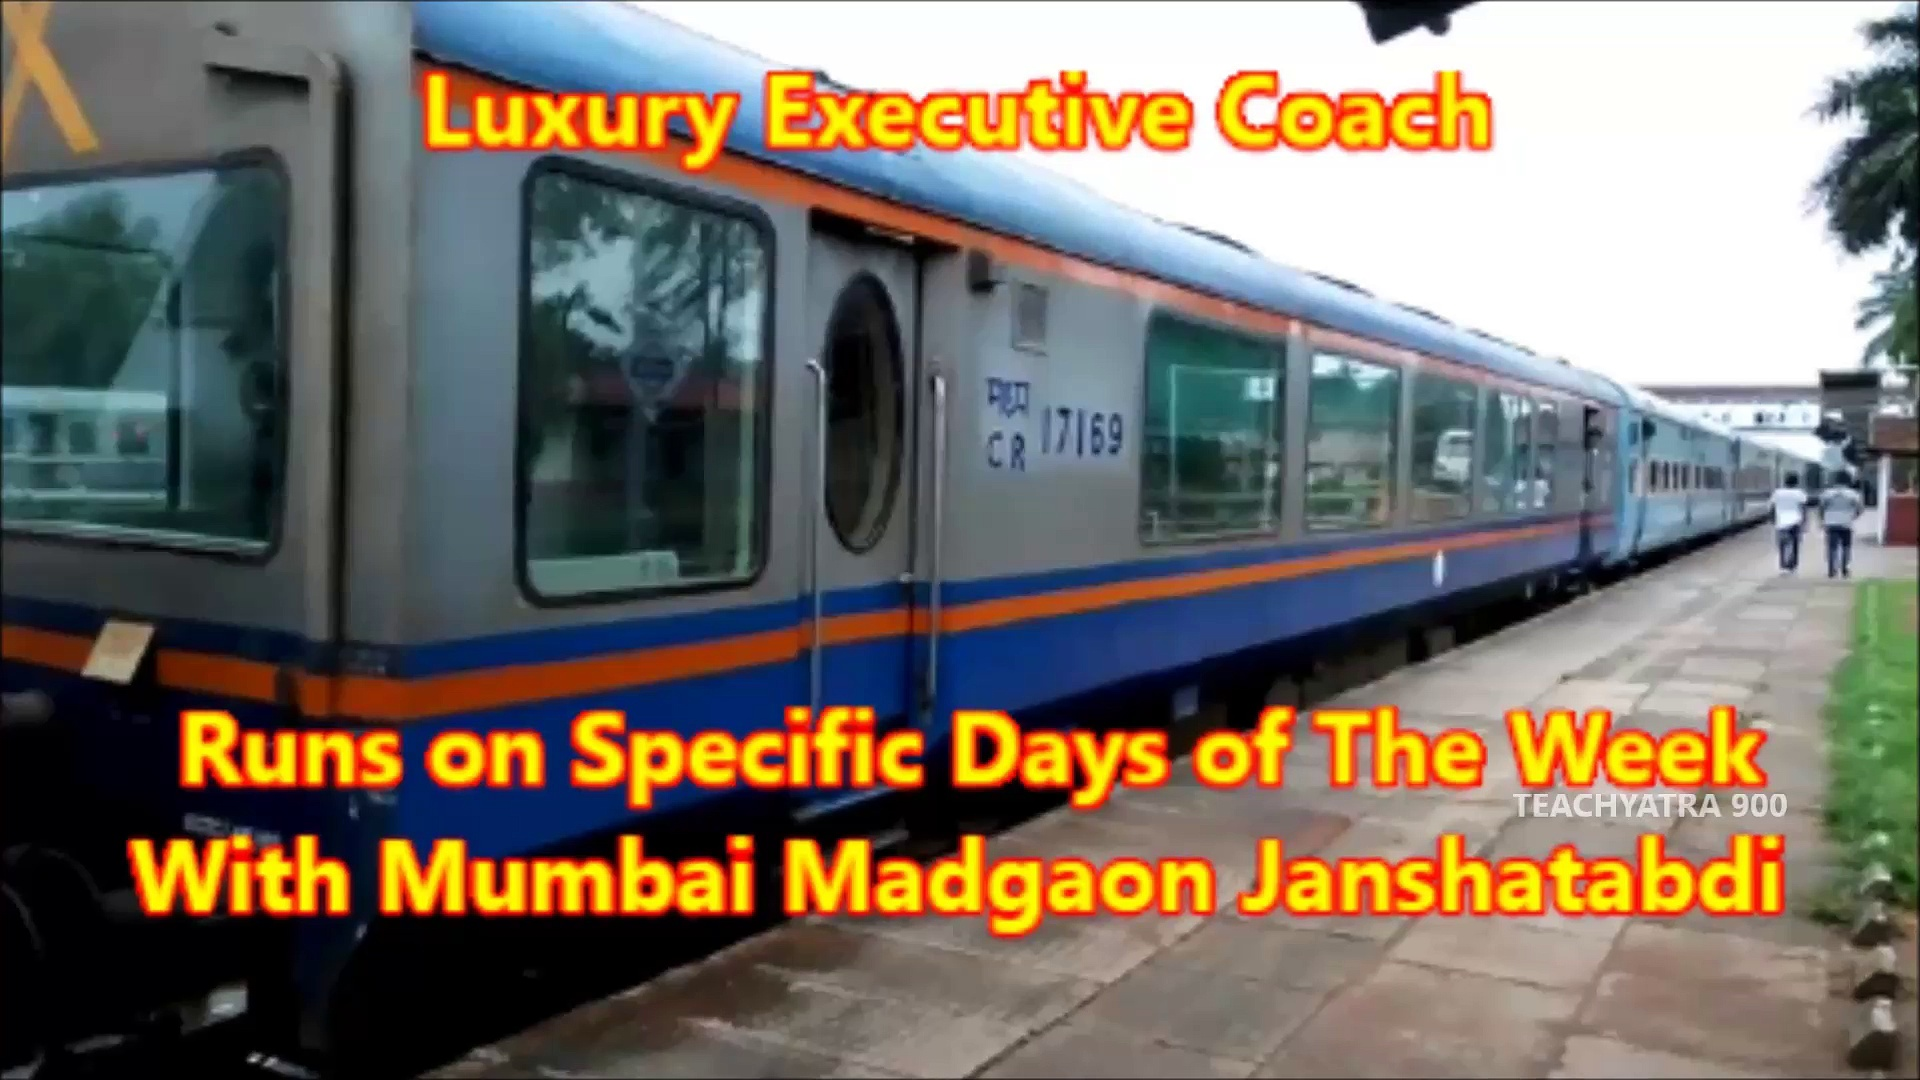 Must Know Routine About This Luxury Executive Coach